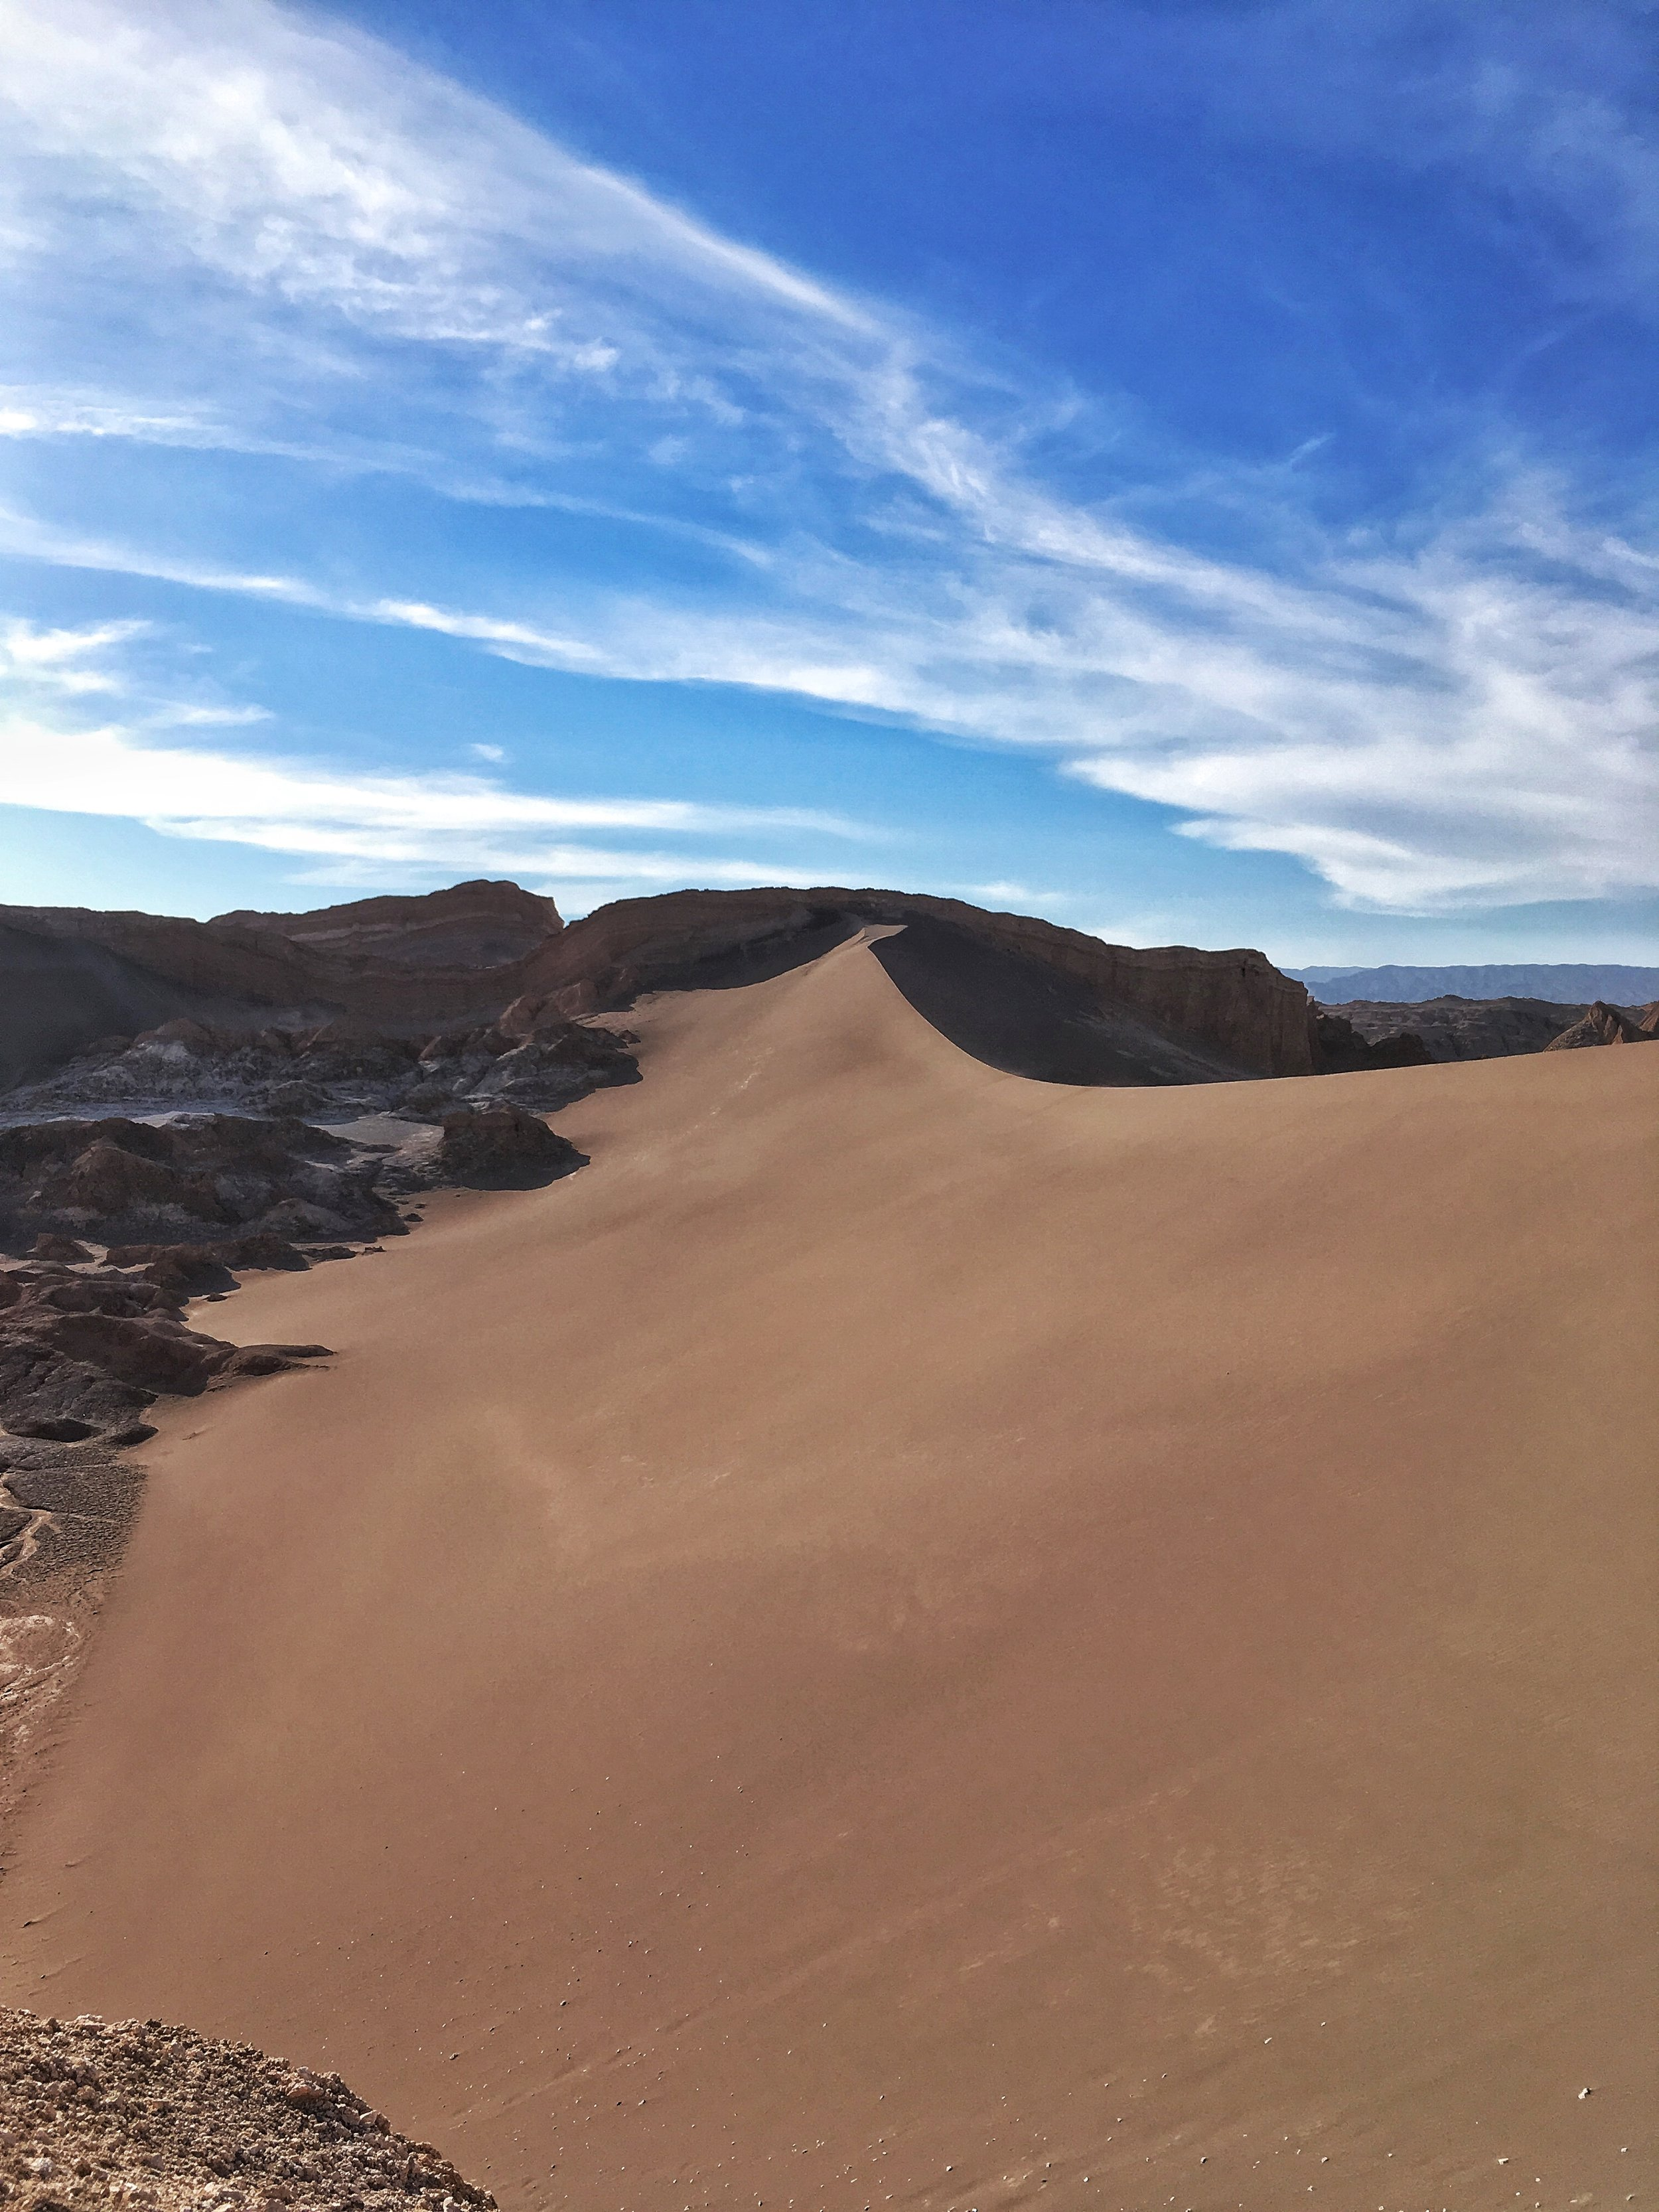 An untouched sand dune just begging for some footprints